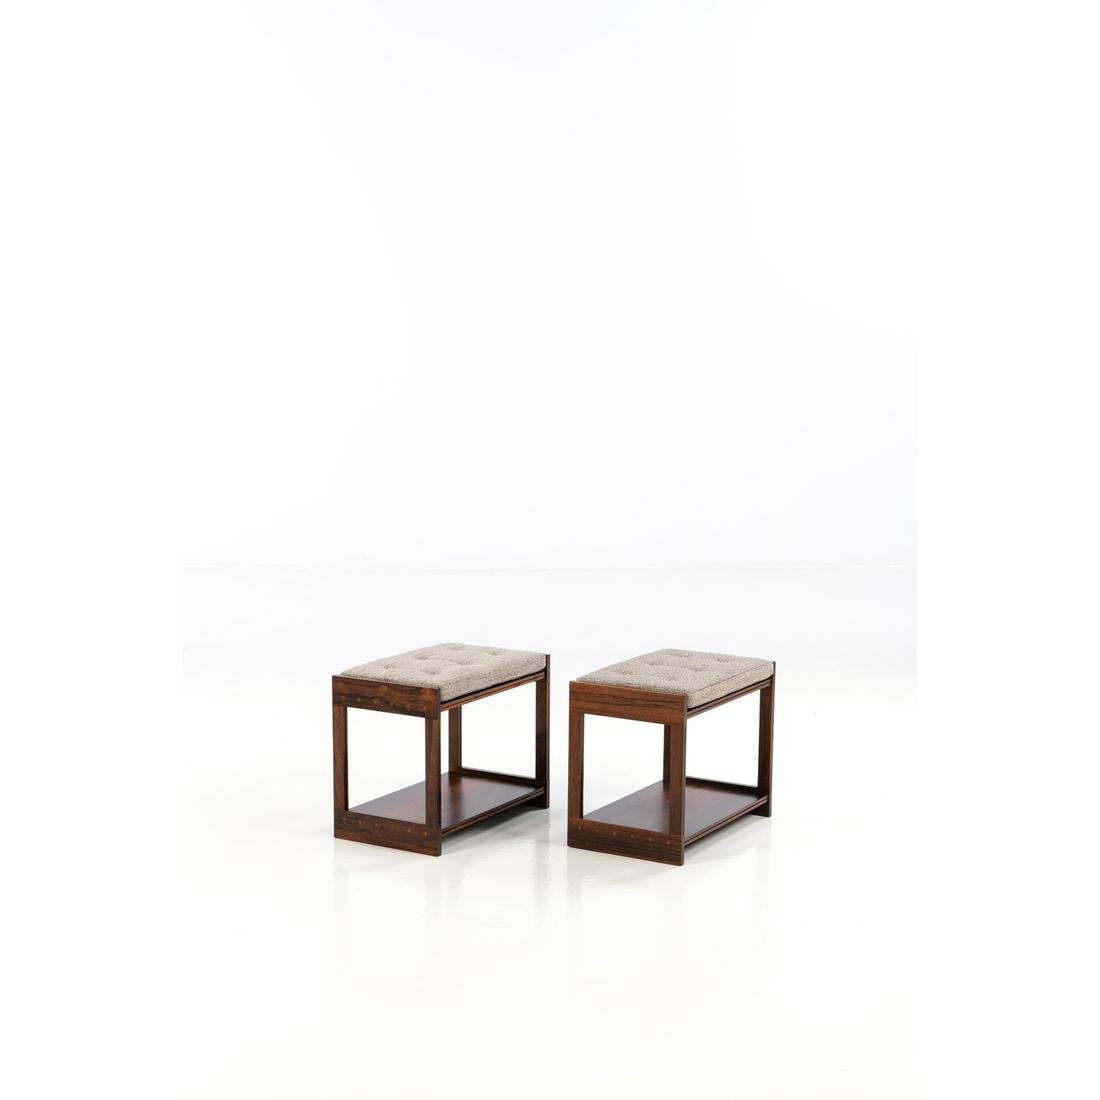 Grete Jalk (1920-2006) Pair of stools or side tables